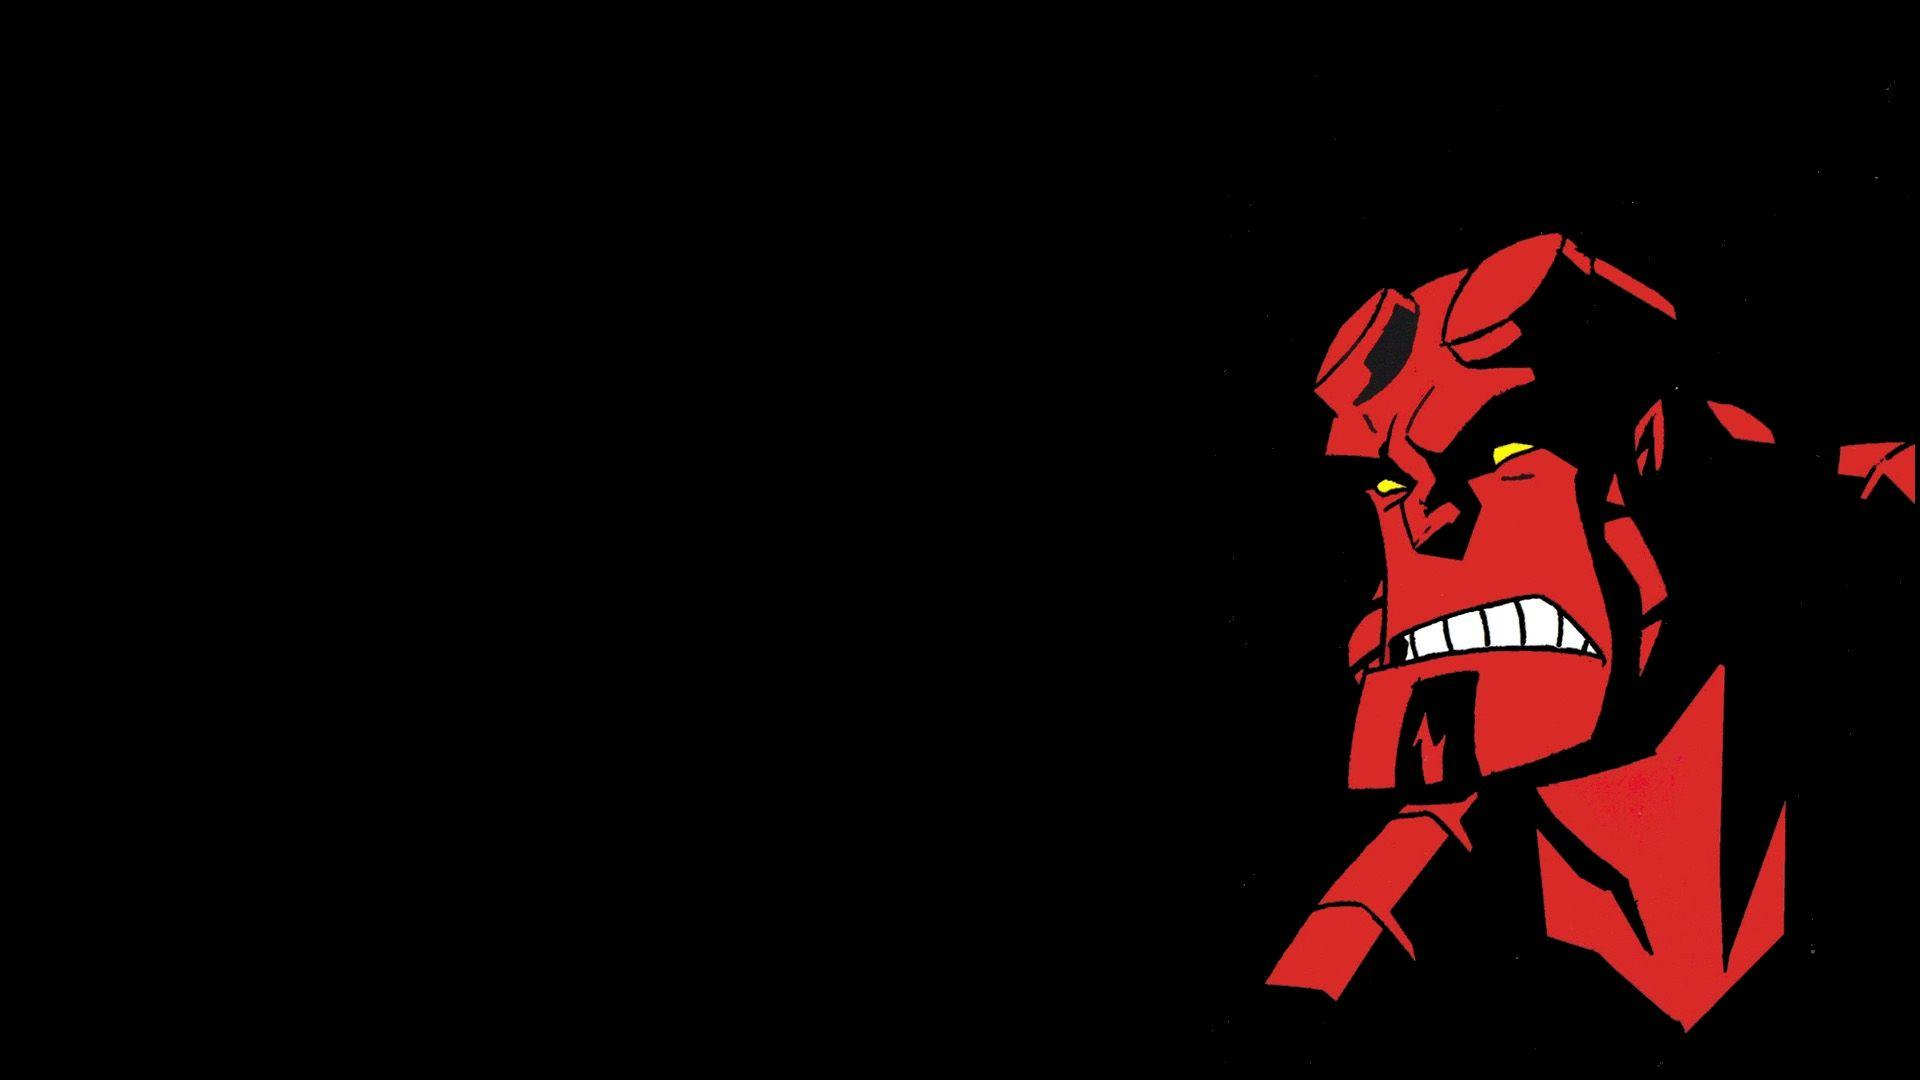 Space Hd Wallpapers 1080p Hellboy Wallpapers Wallpaper Cave